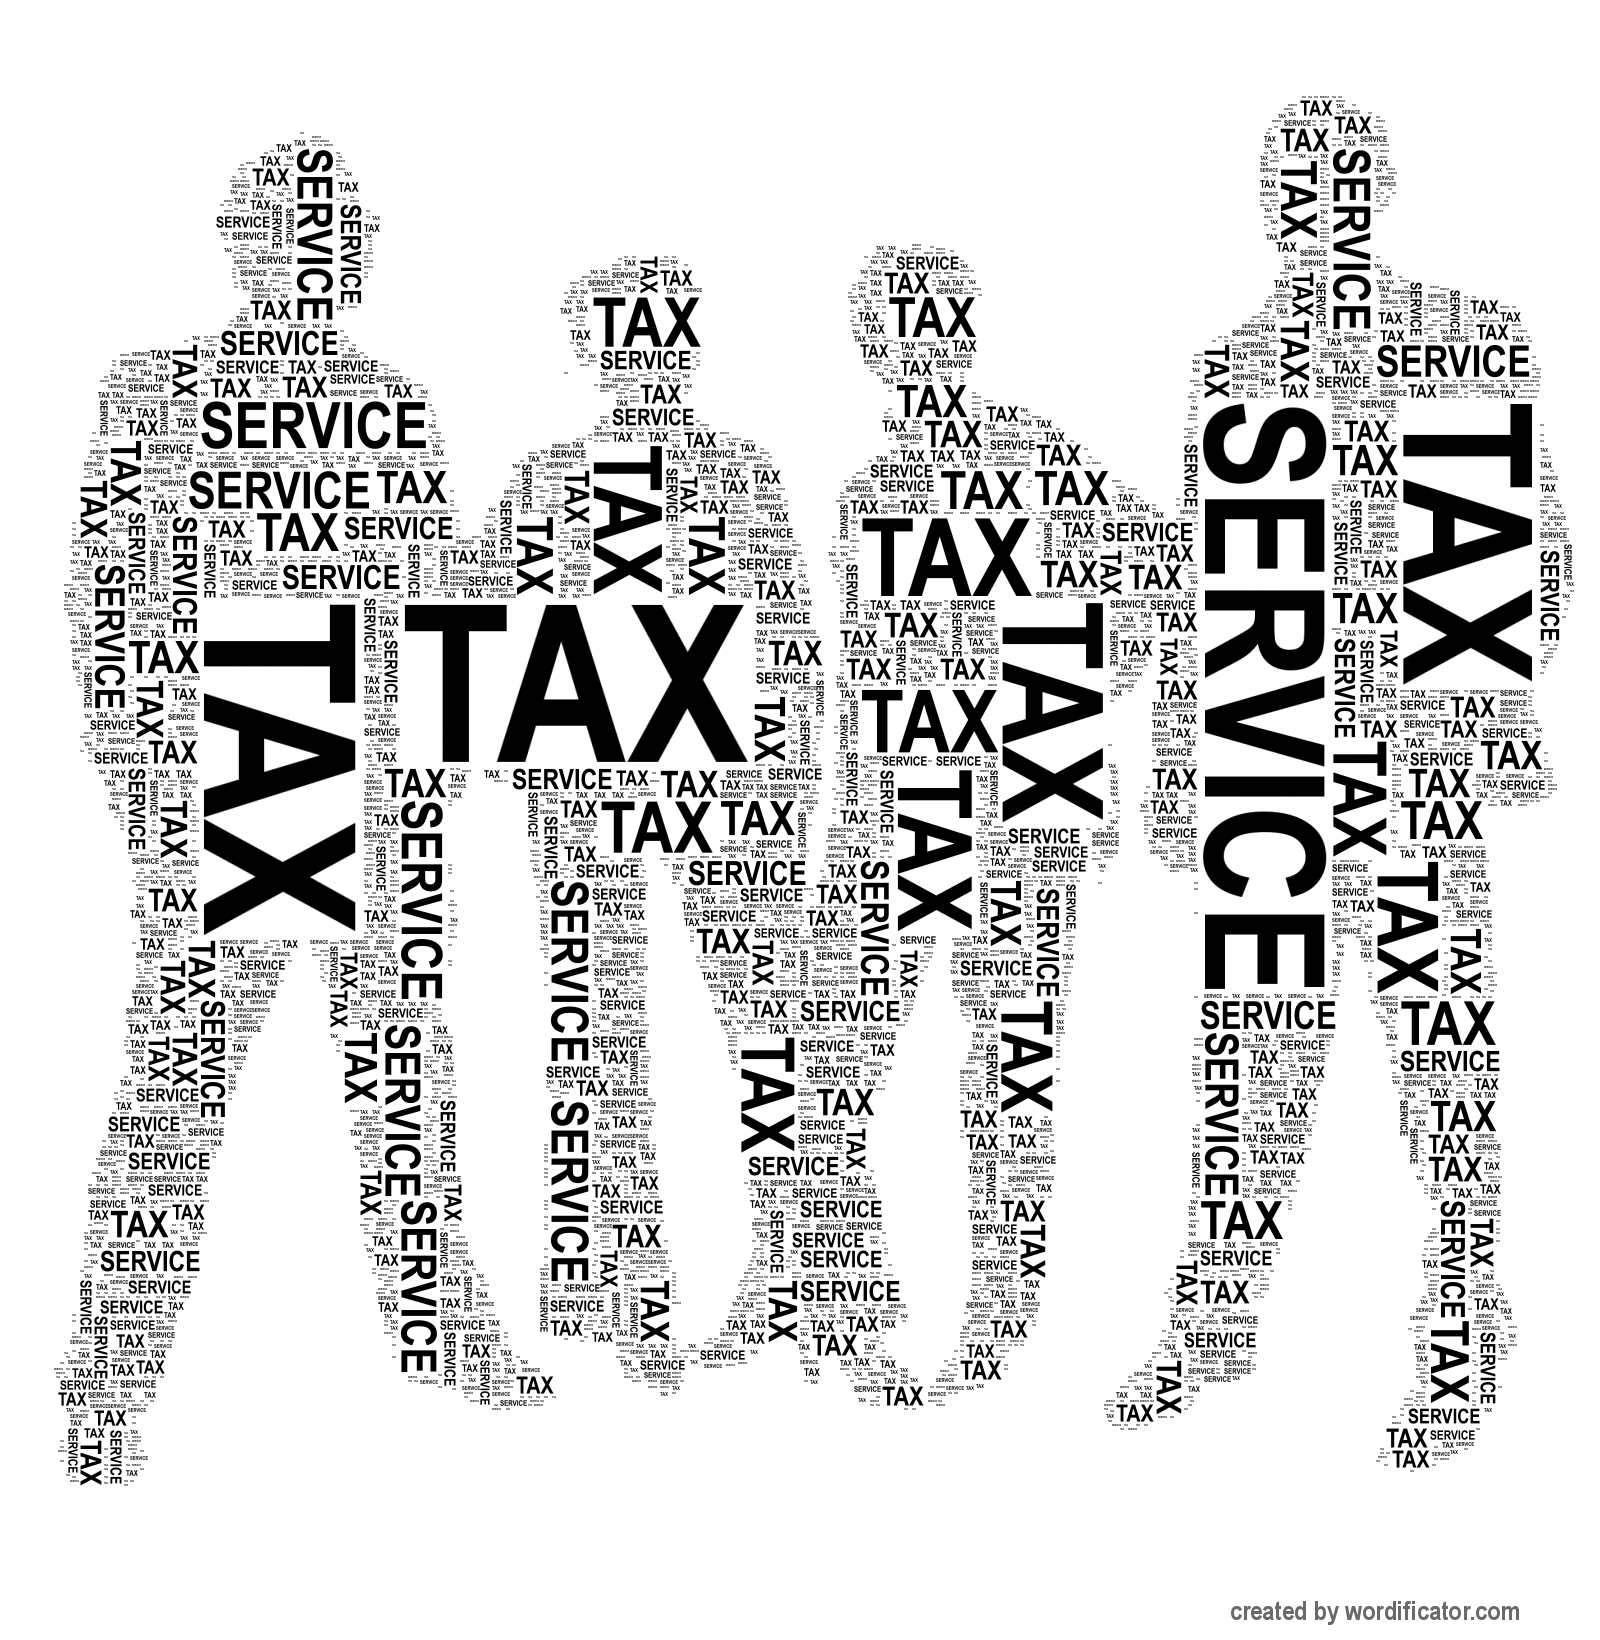 Online Income tax in India